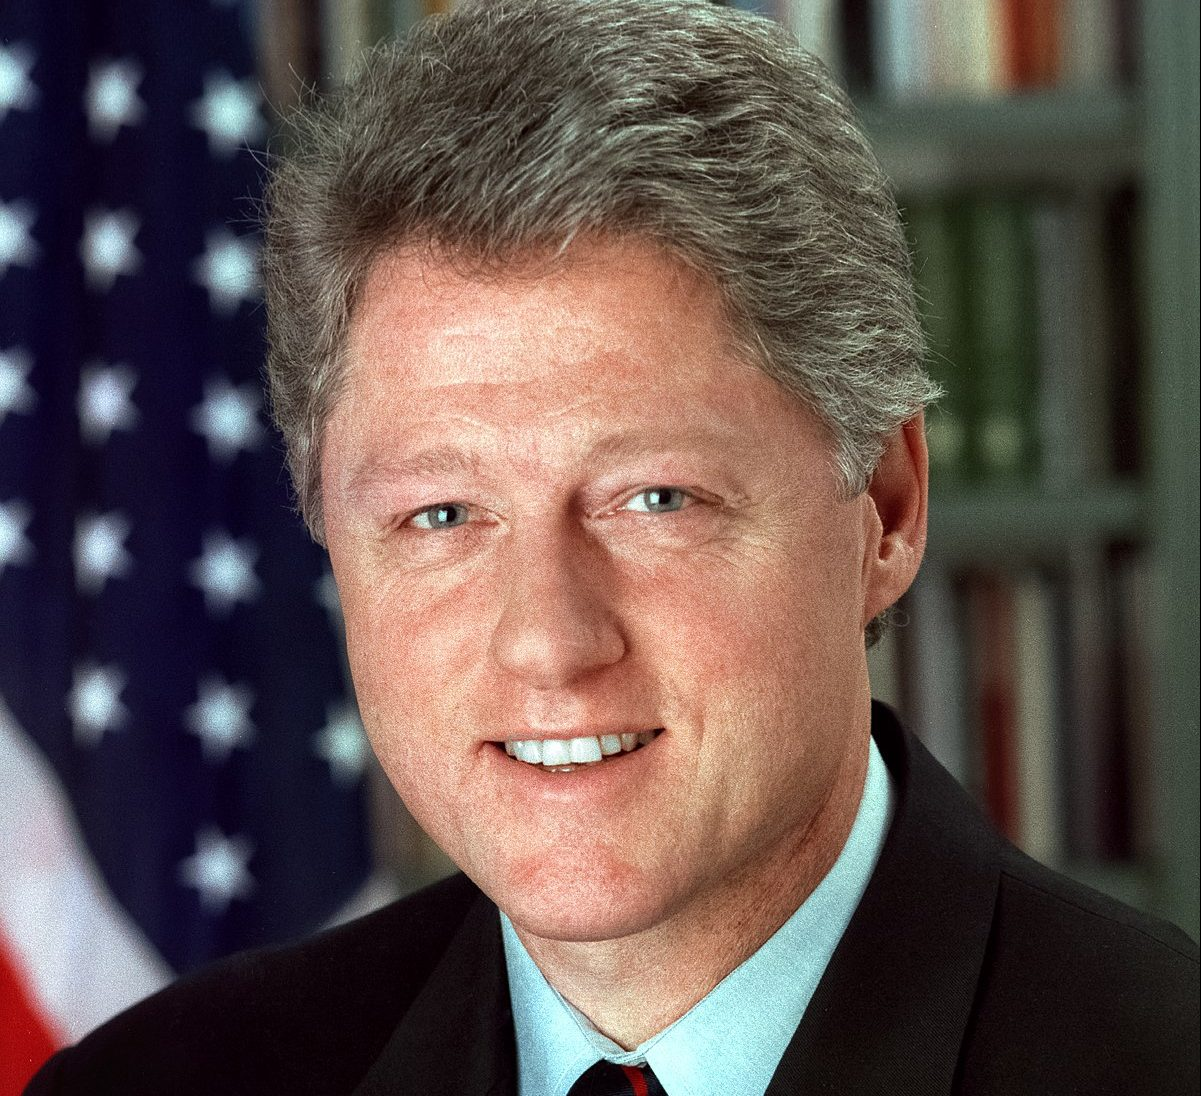 1200px Bill Clinton e1623330360804 20 Presidential Facts You Didn't Know About Air Force One